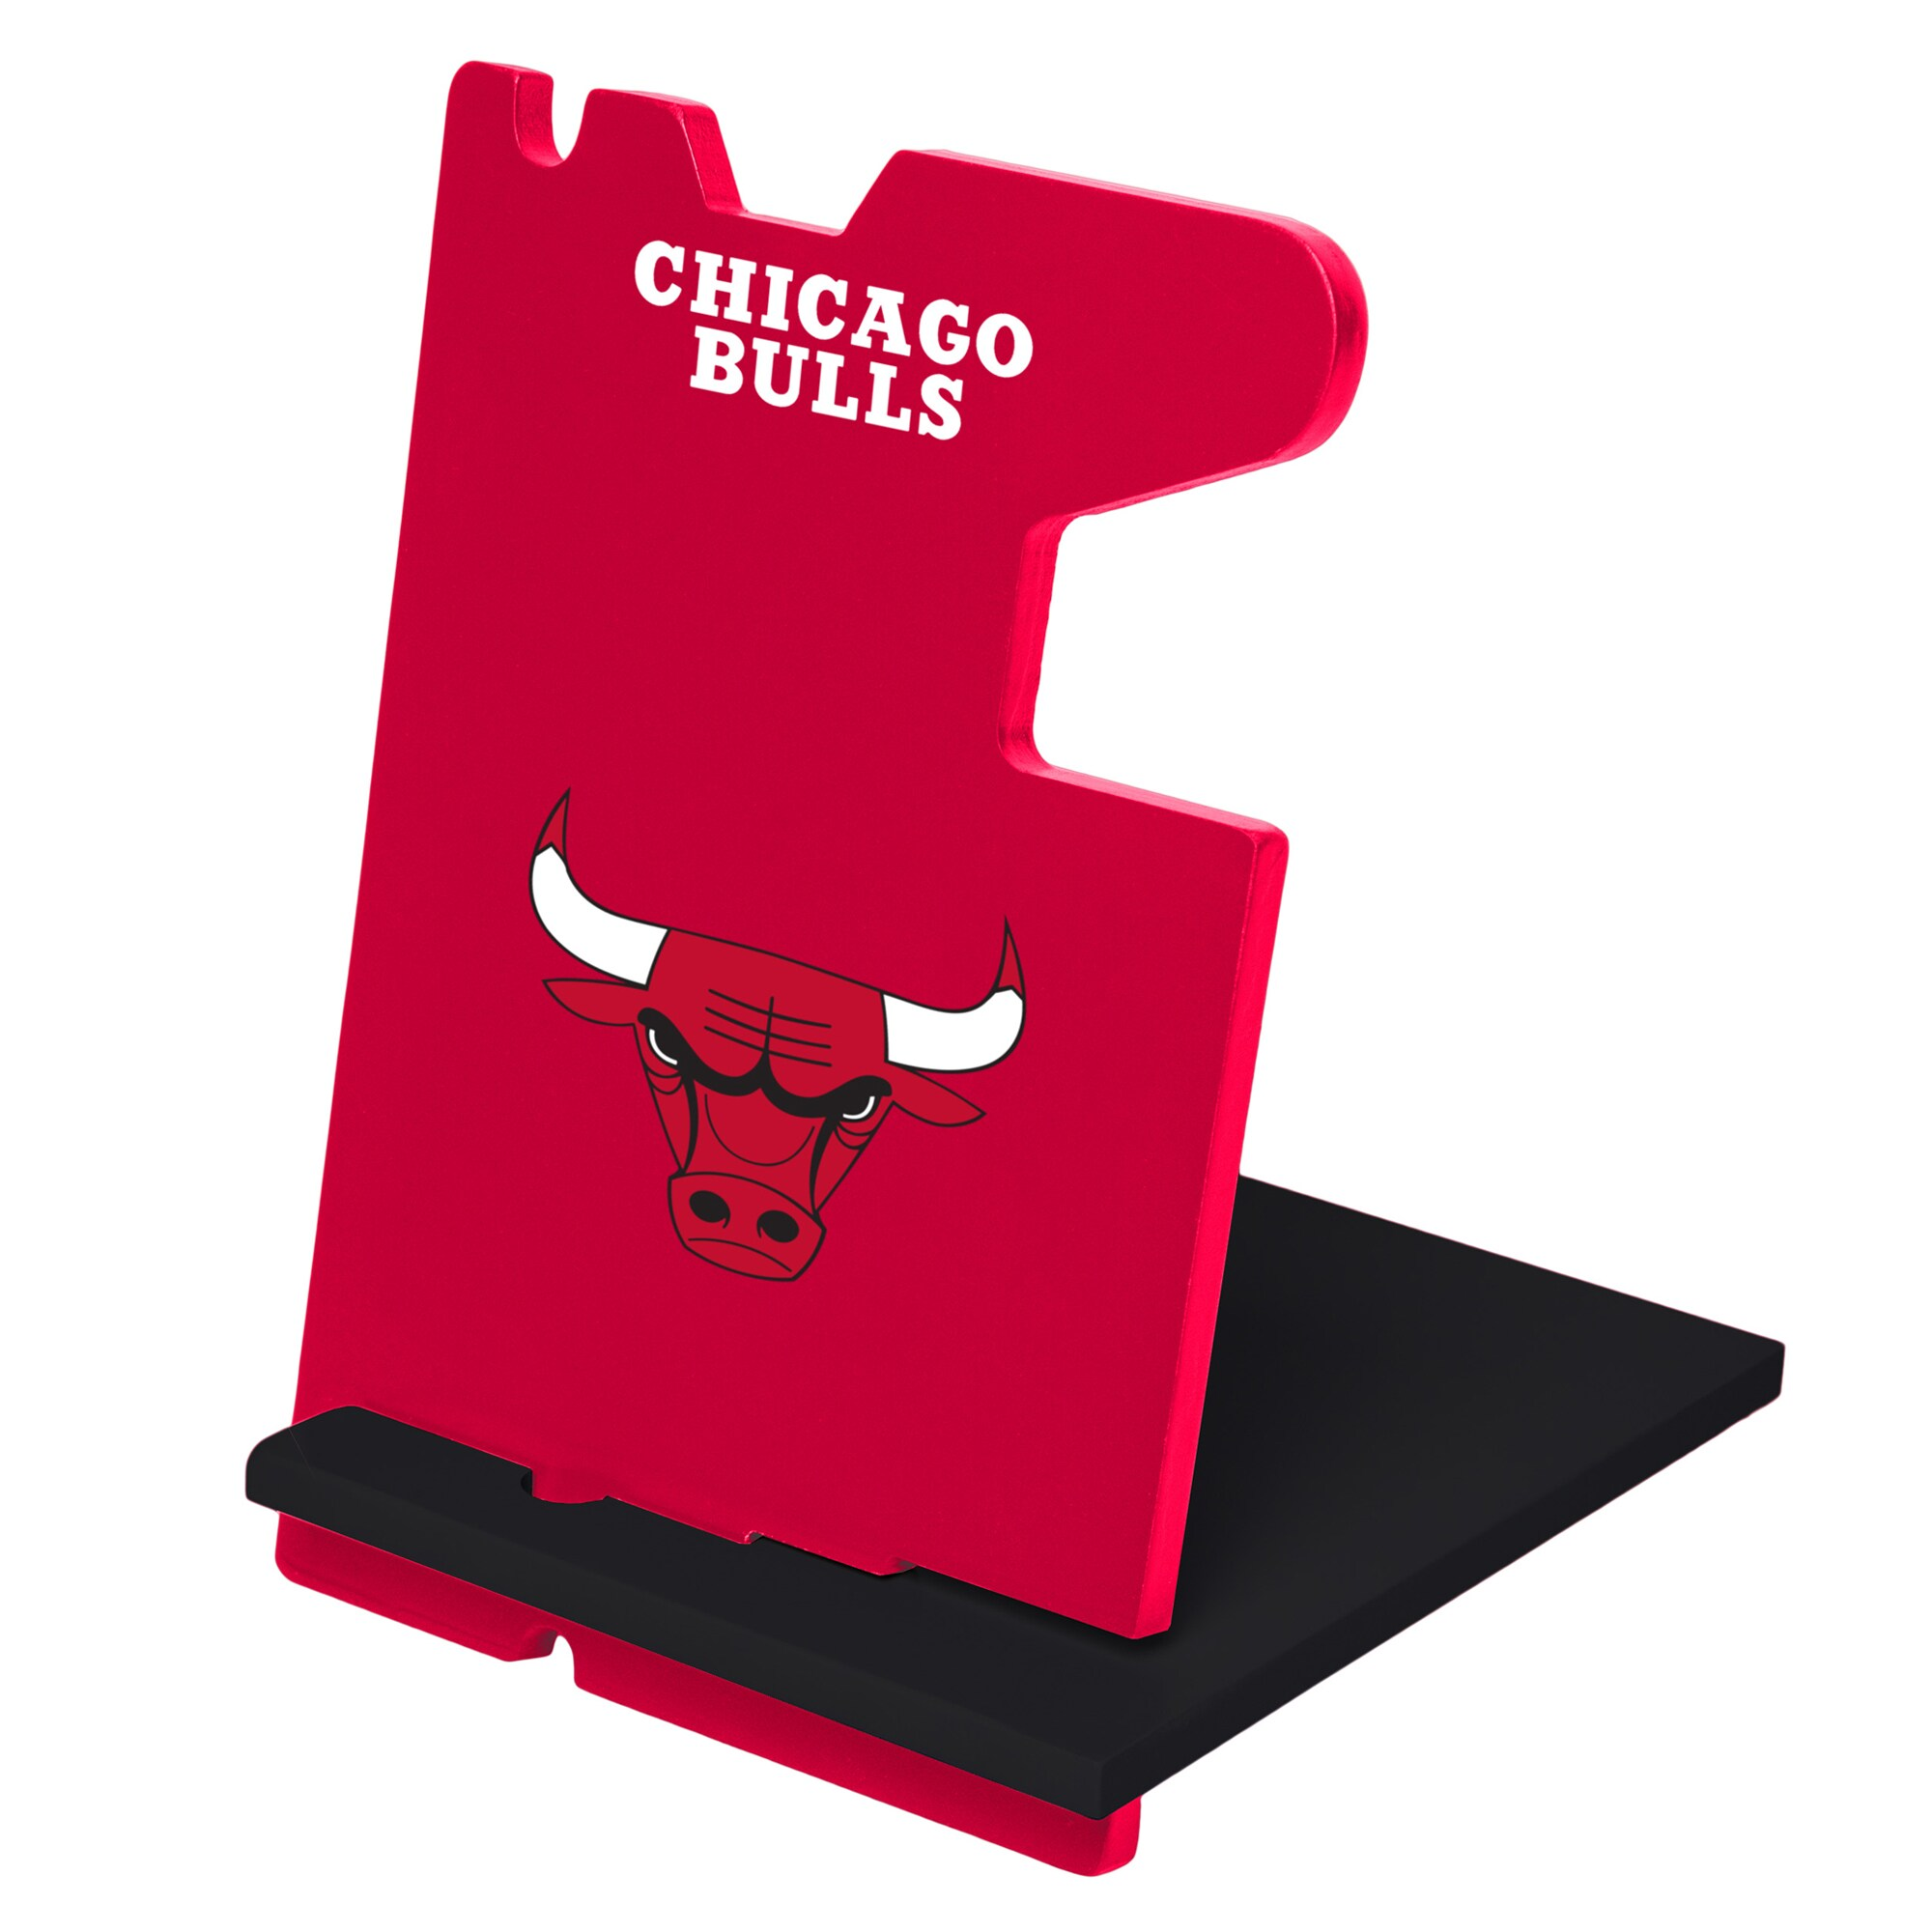 Chicago Bulls Phone Docking Station